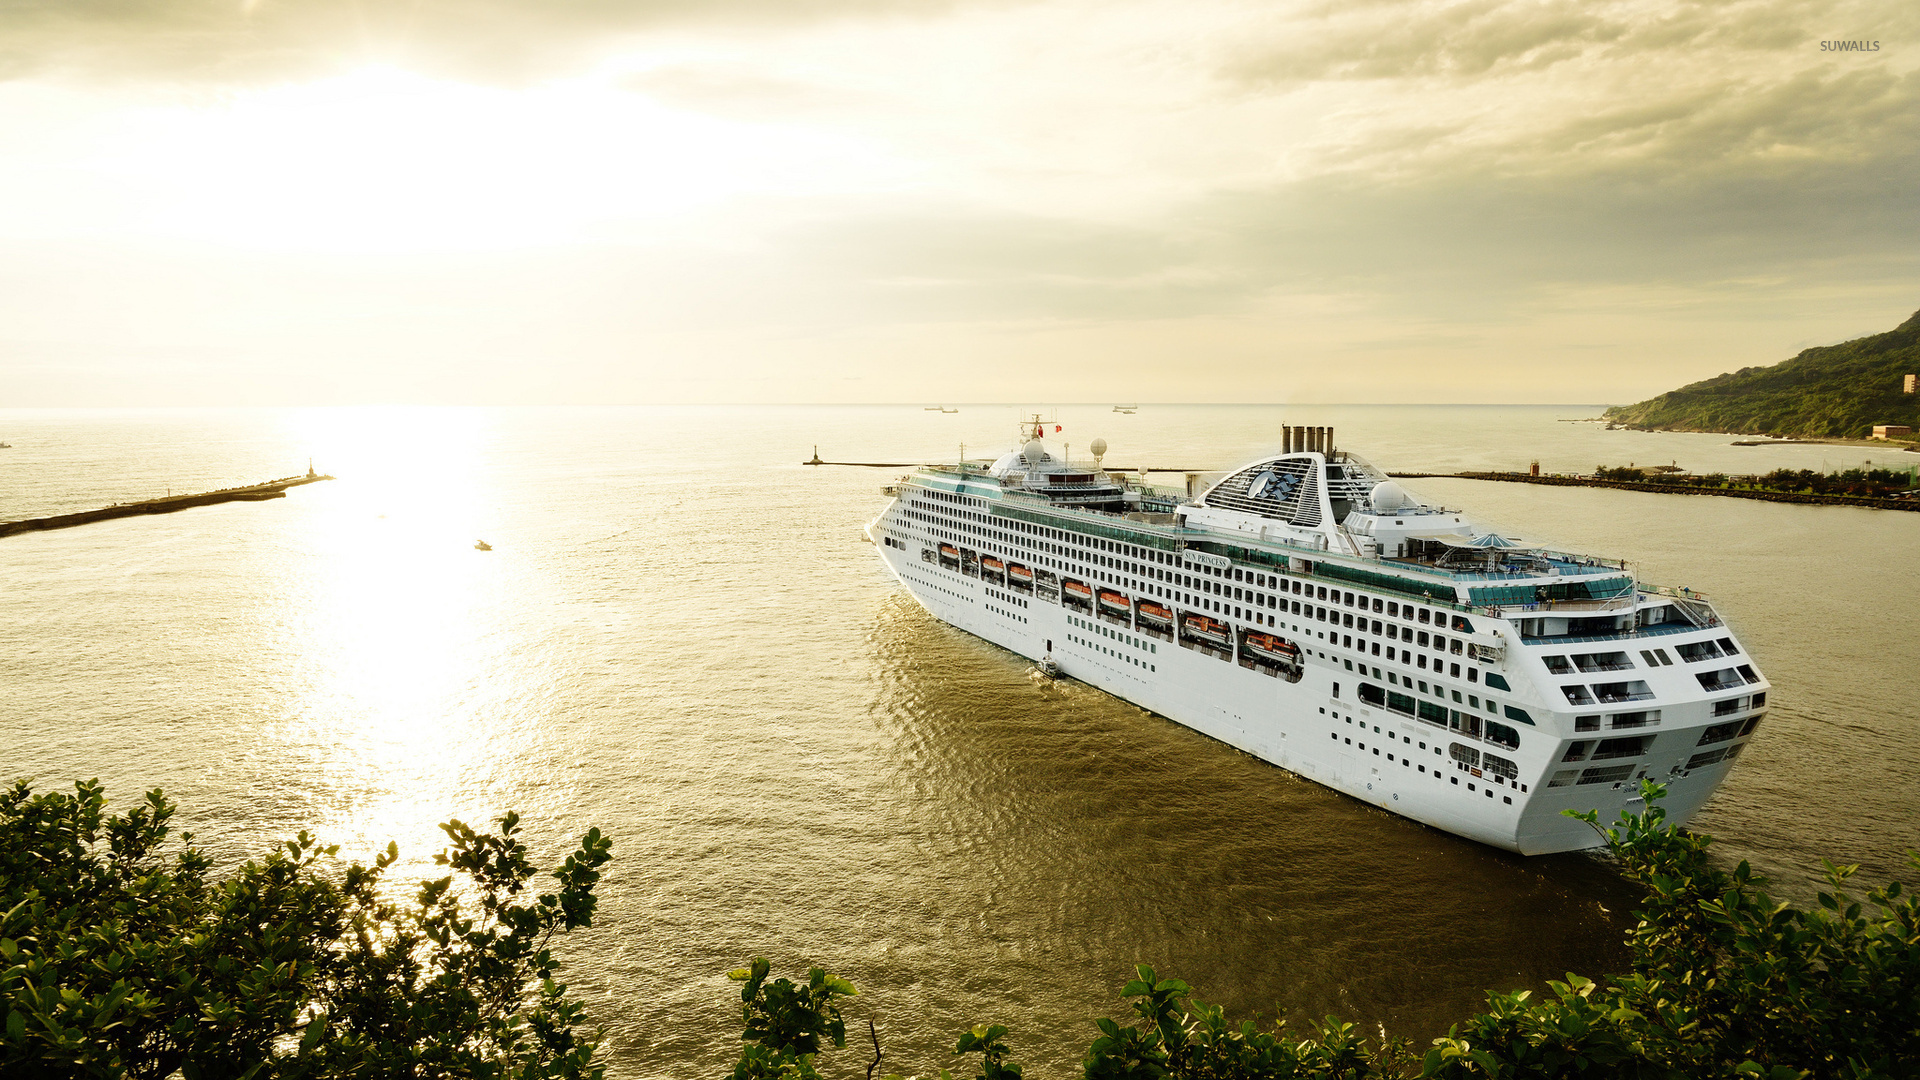 Cruise Ship 5 Wallpaper Photography Wallpapers 45328